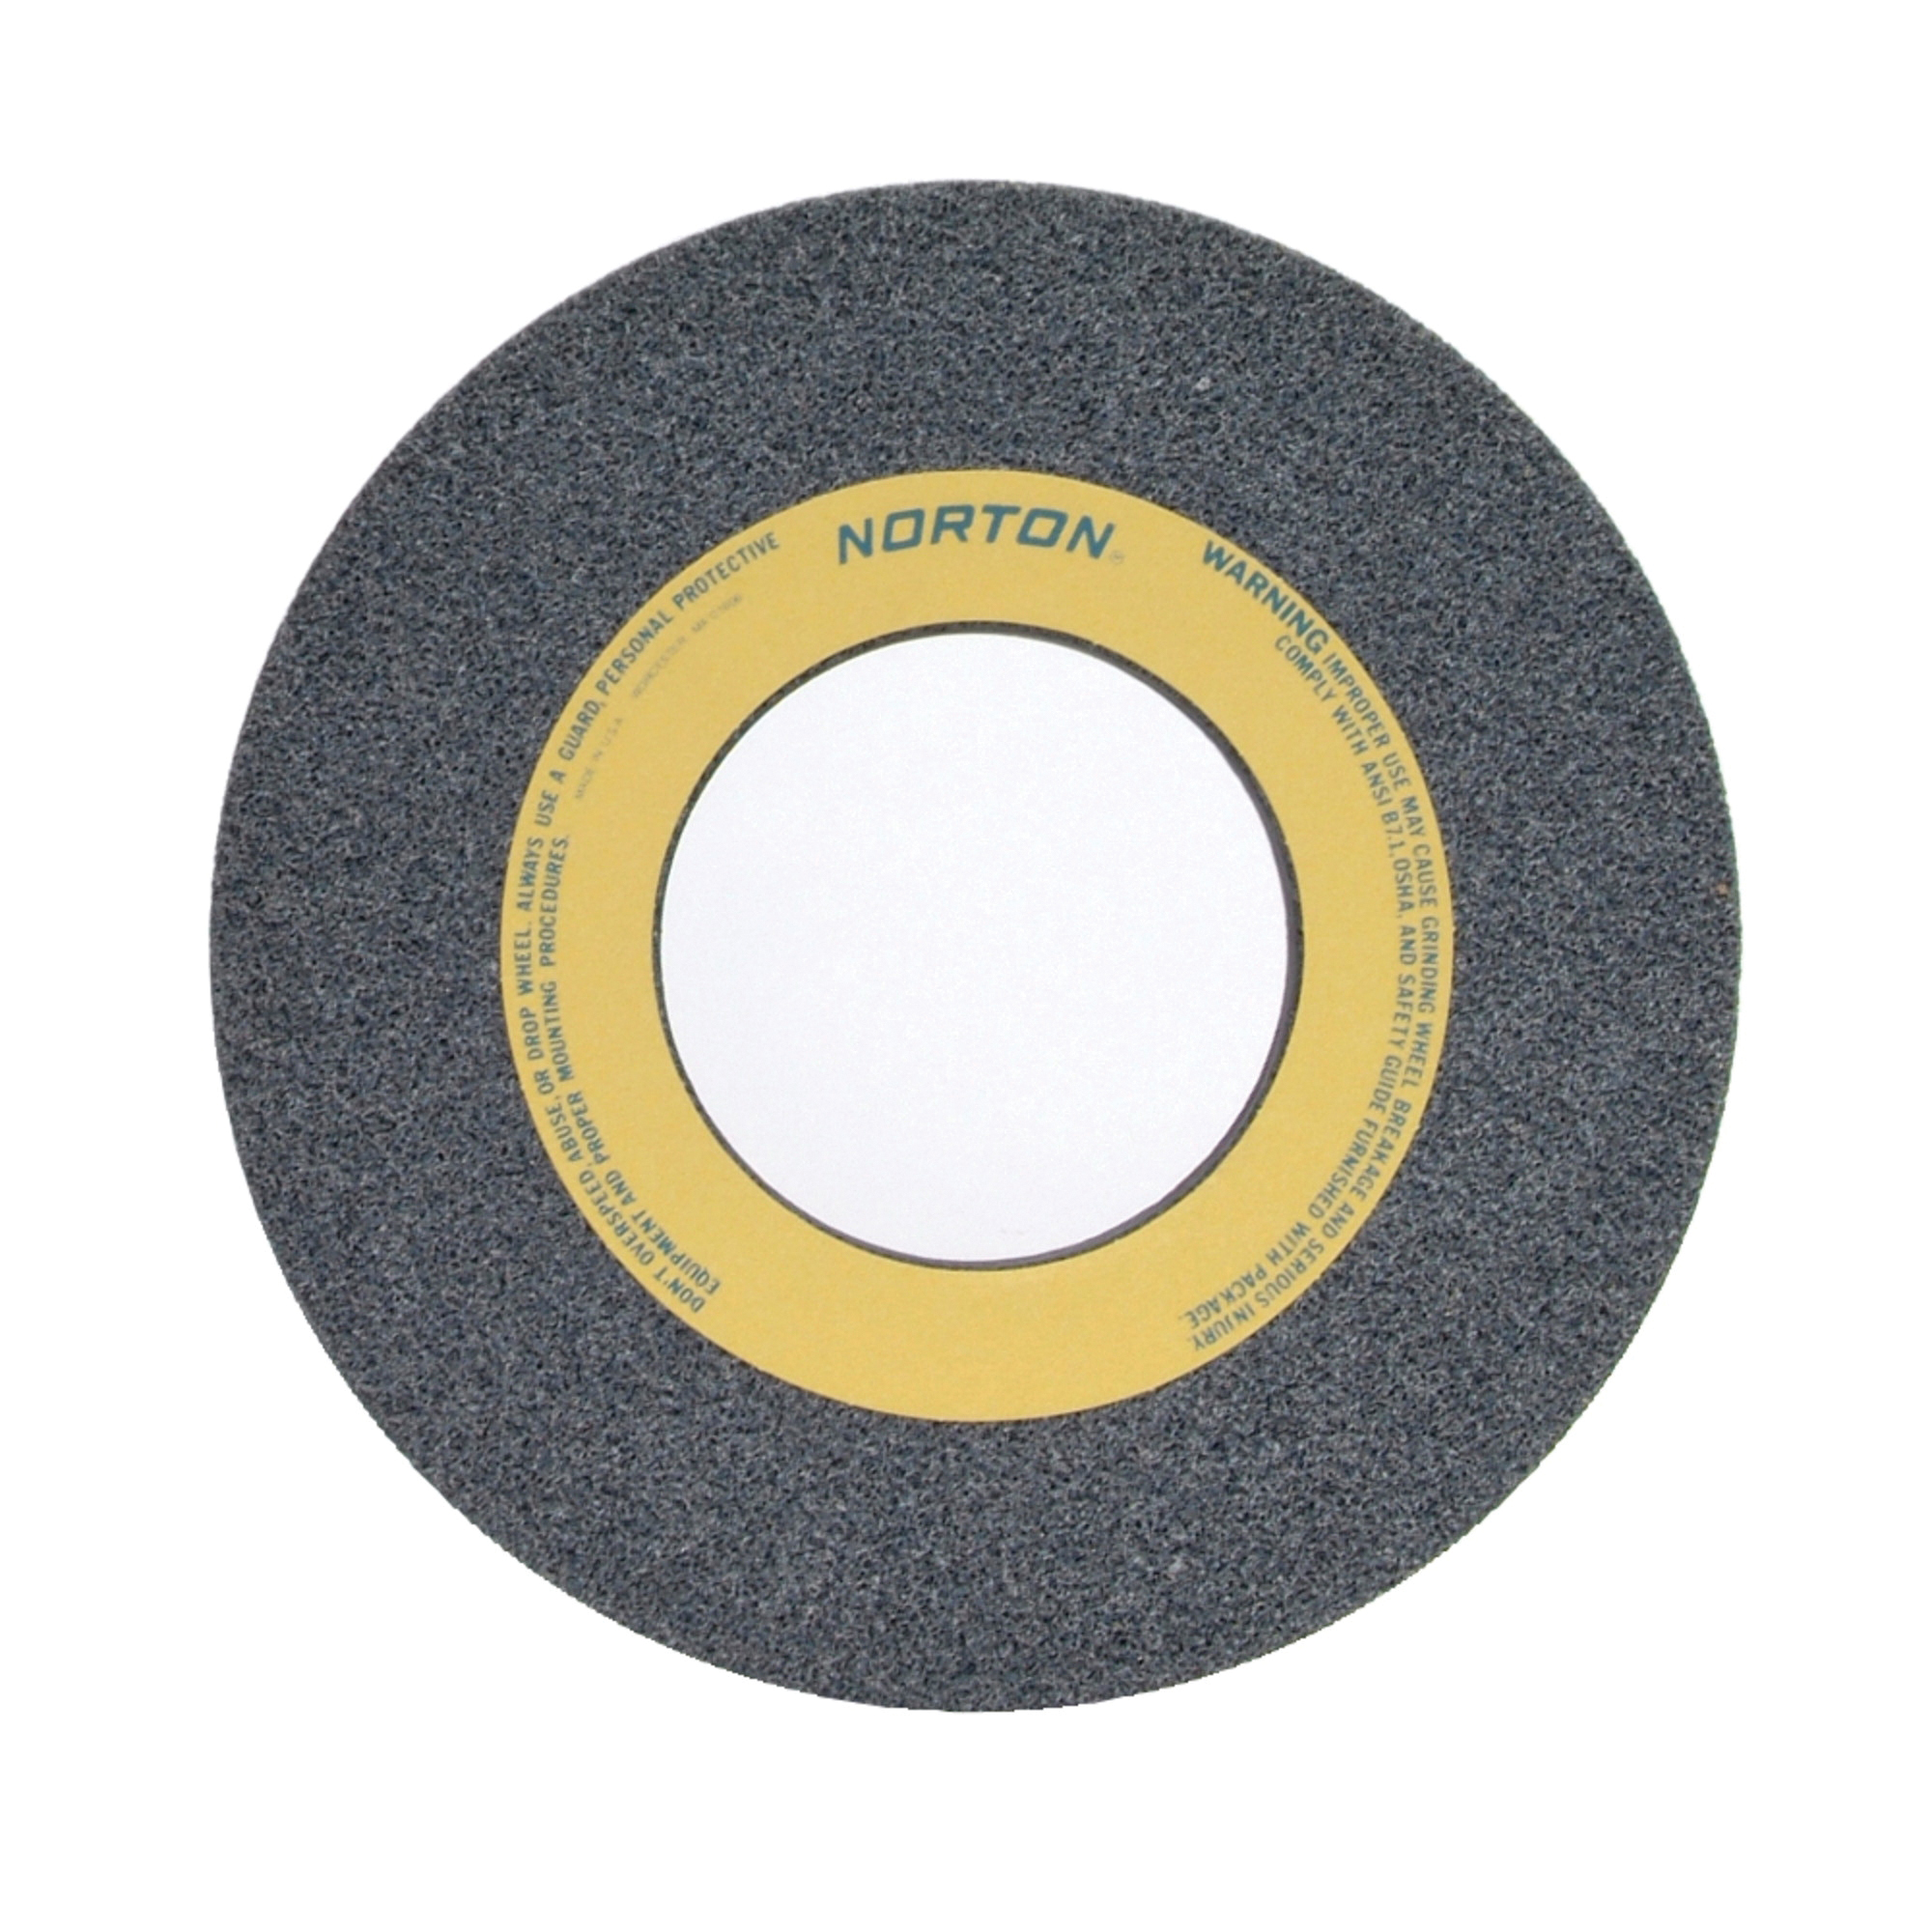 Norton® 66253262841 32A Straight Toolroom Wheel, 12 in Dia x 1 in THK, 5 in Center Hole, 46 Grit, Aluminum Oxide Abrasive